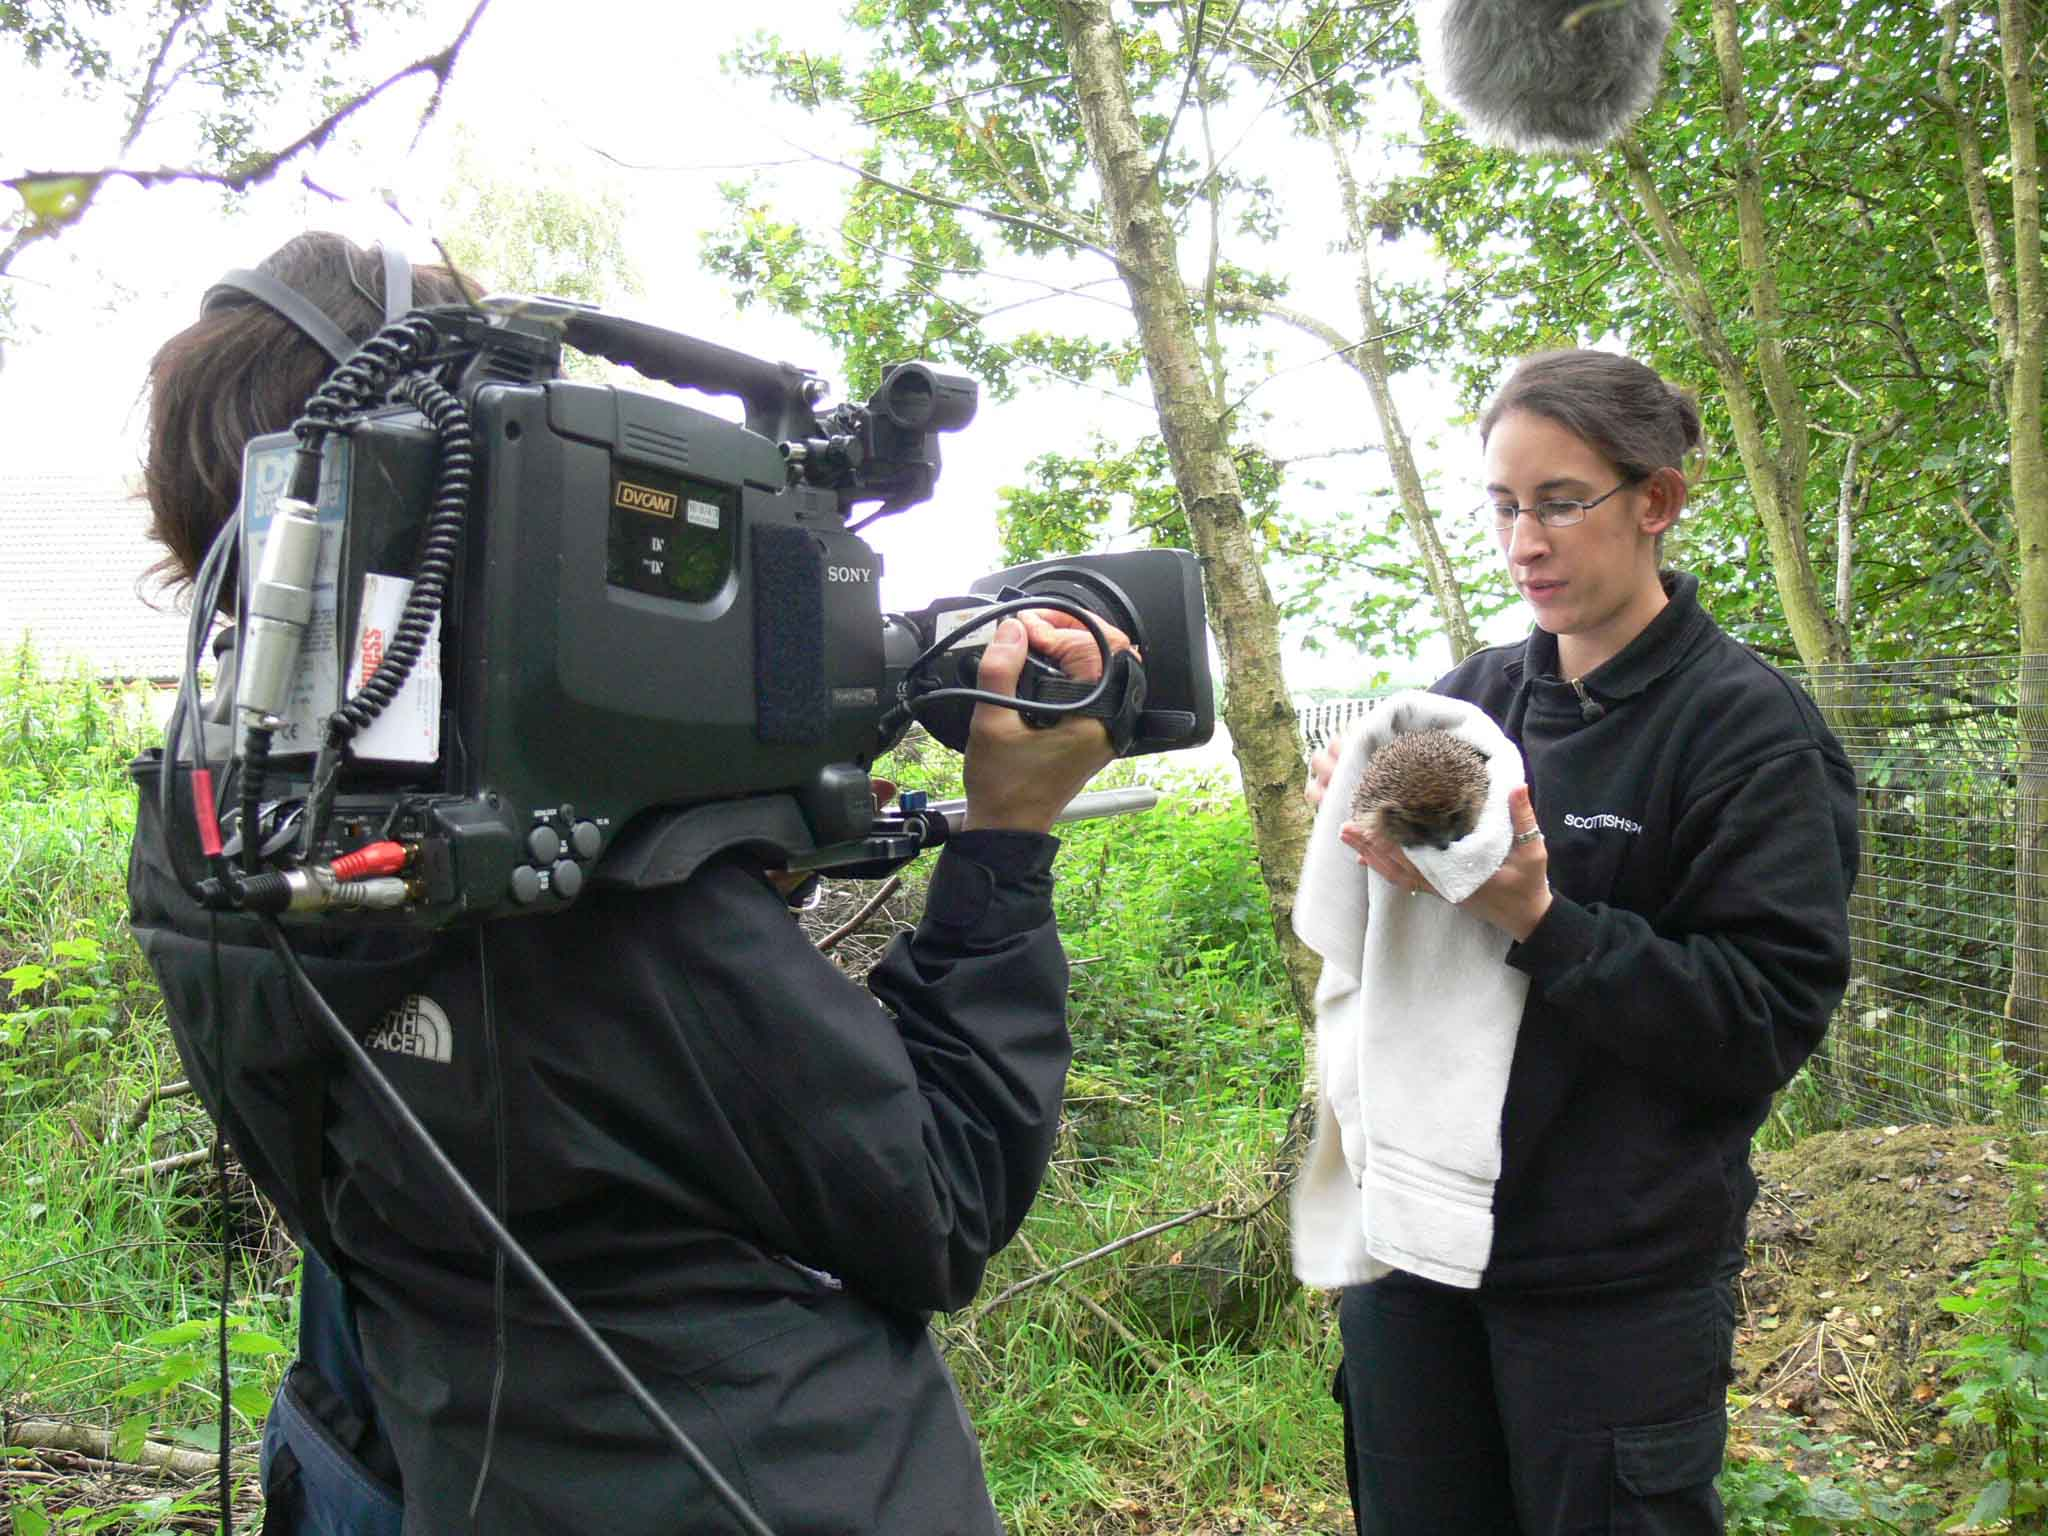 SSPCA officer Nadia with film crew and hoglet